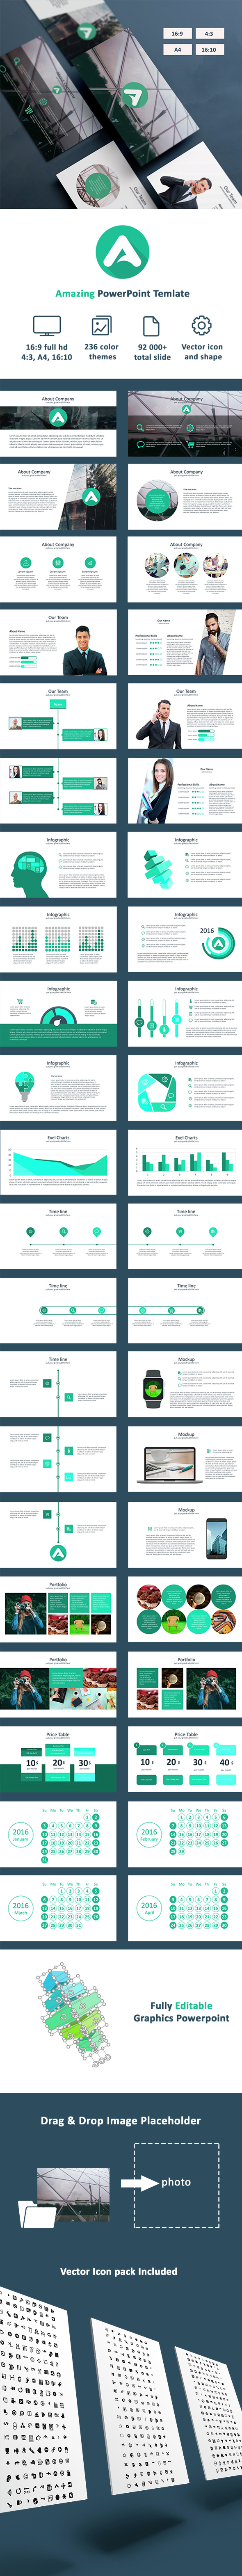 Amazing powerpoint templates by dmitriynova graphicriver amazing powerpoint templates business powerpoint templates toneelgroepblik Gallery